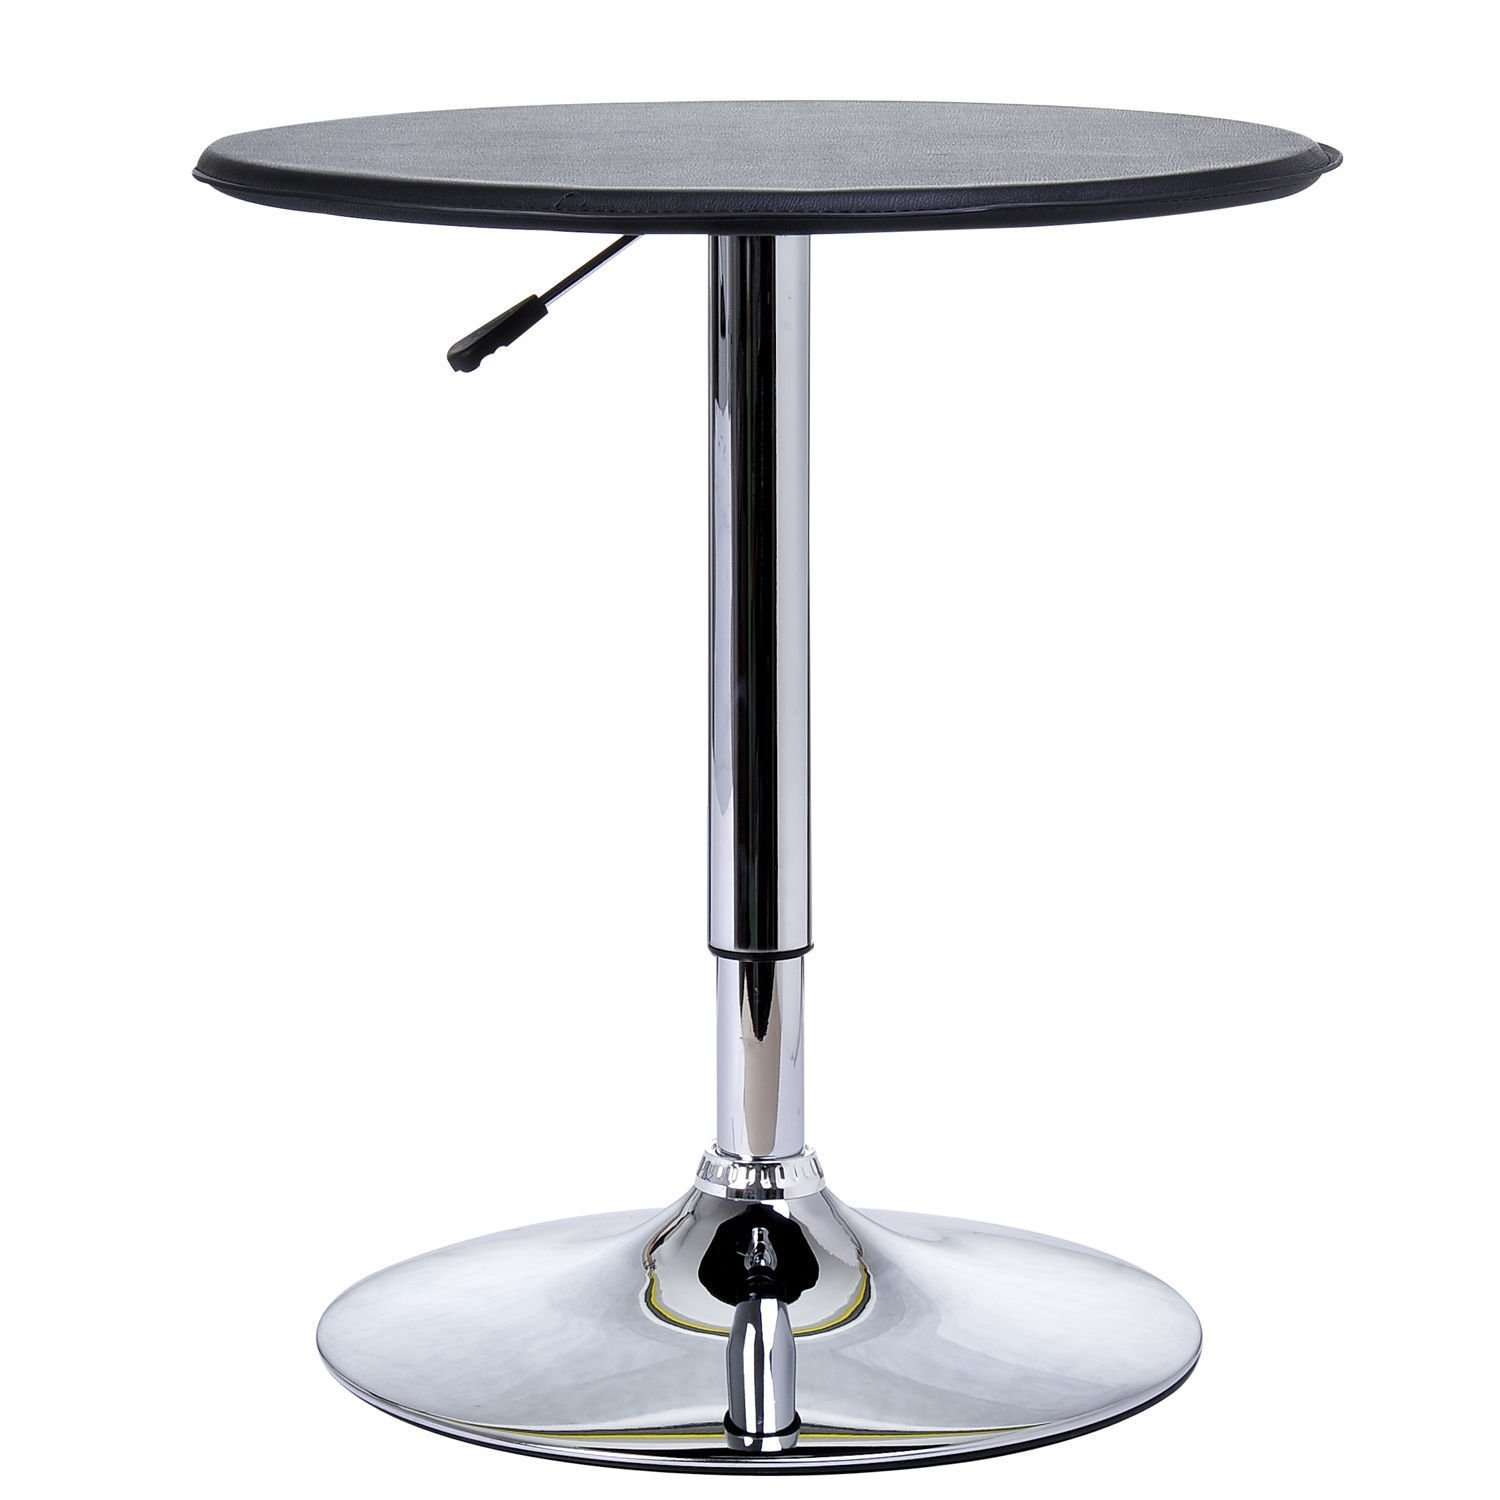 HOMCOM 25'' Classic Round Adjustable PU Leather Top Chrome Standing Bistro Bar Table